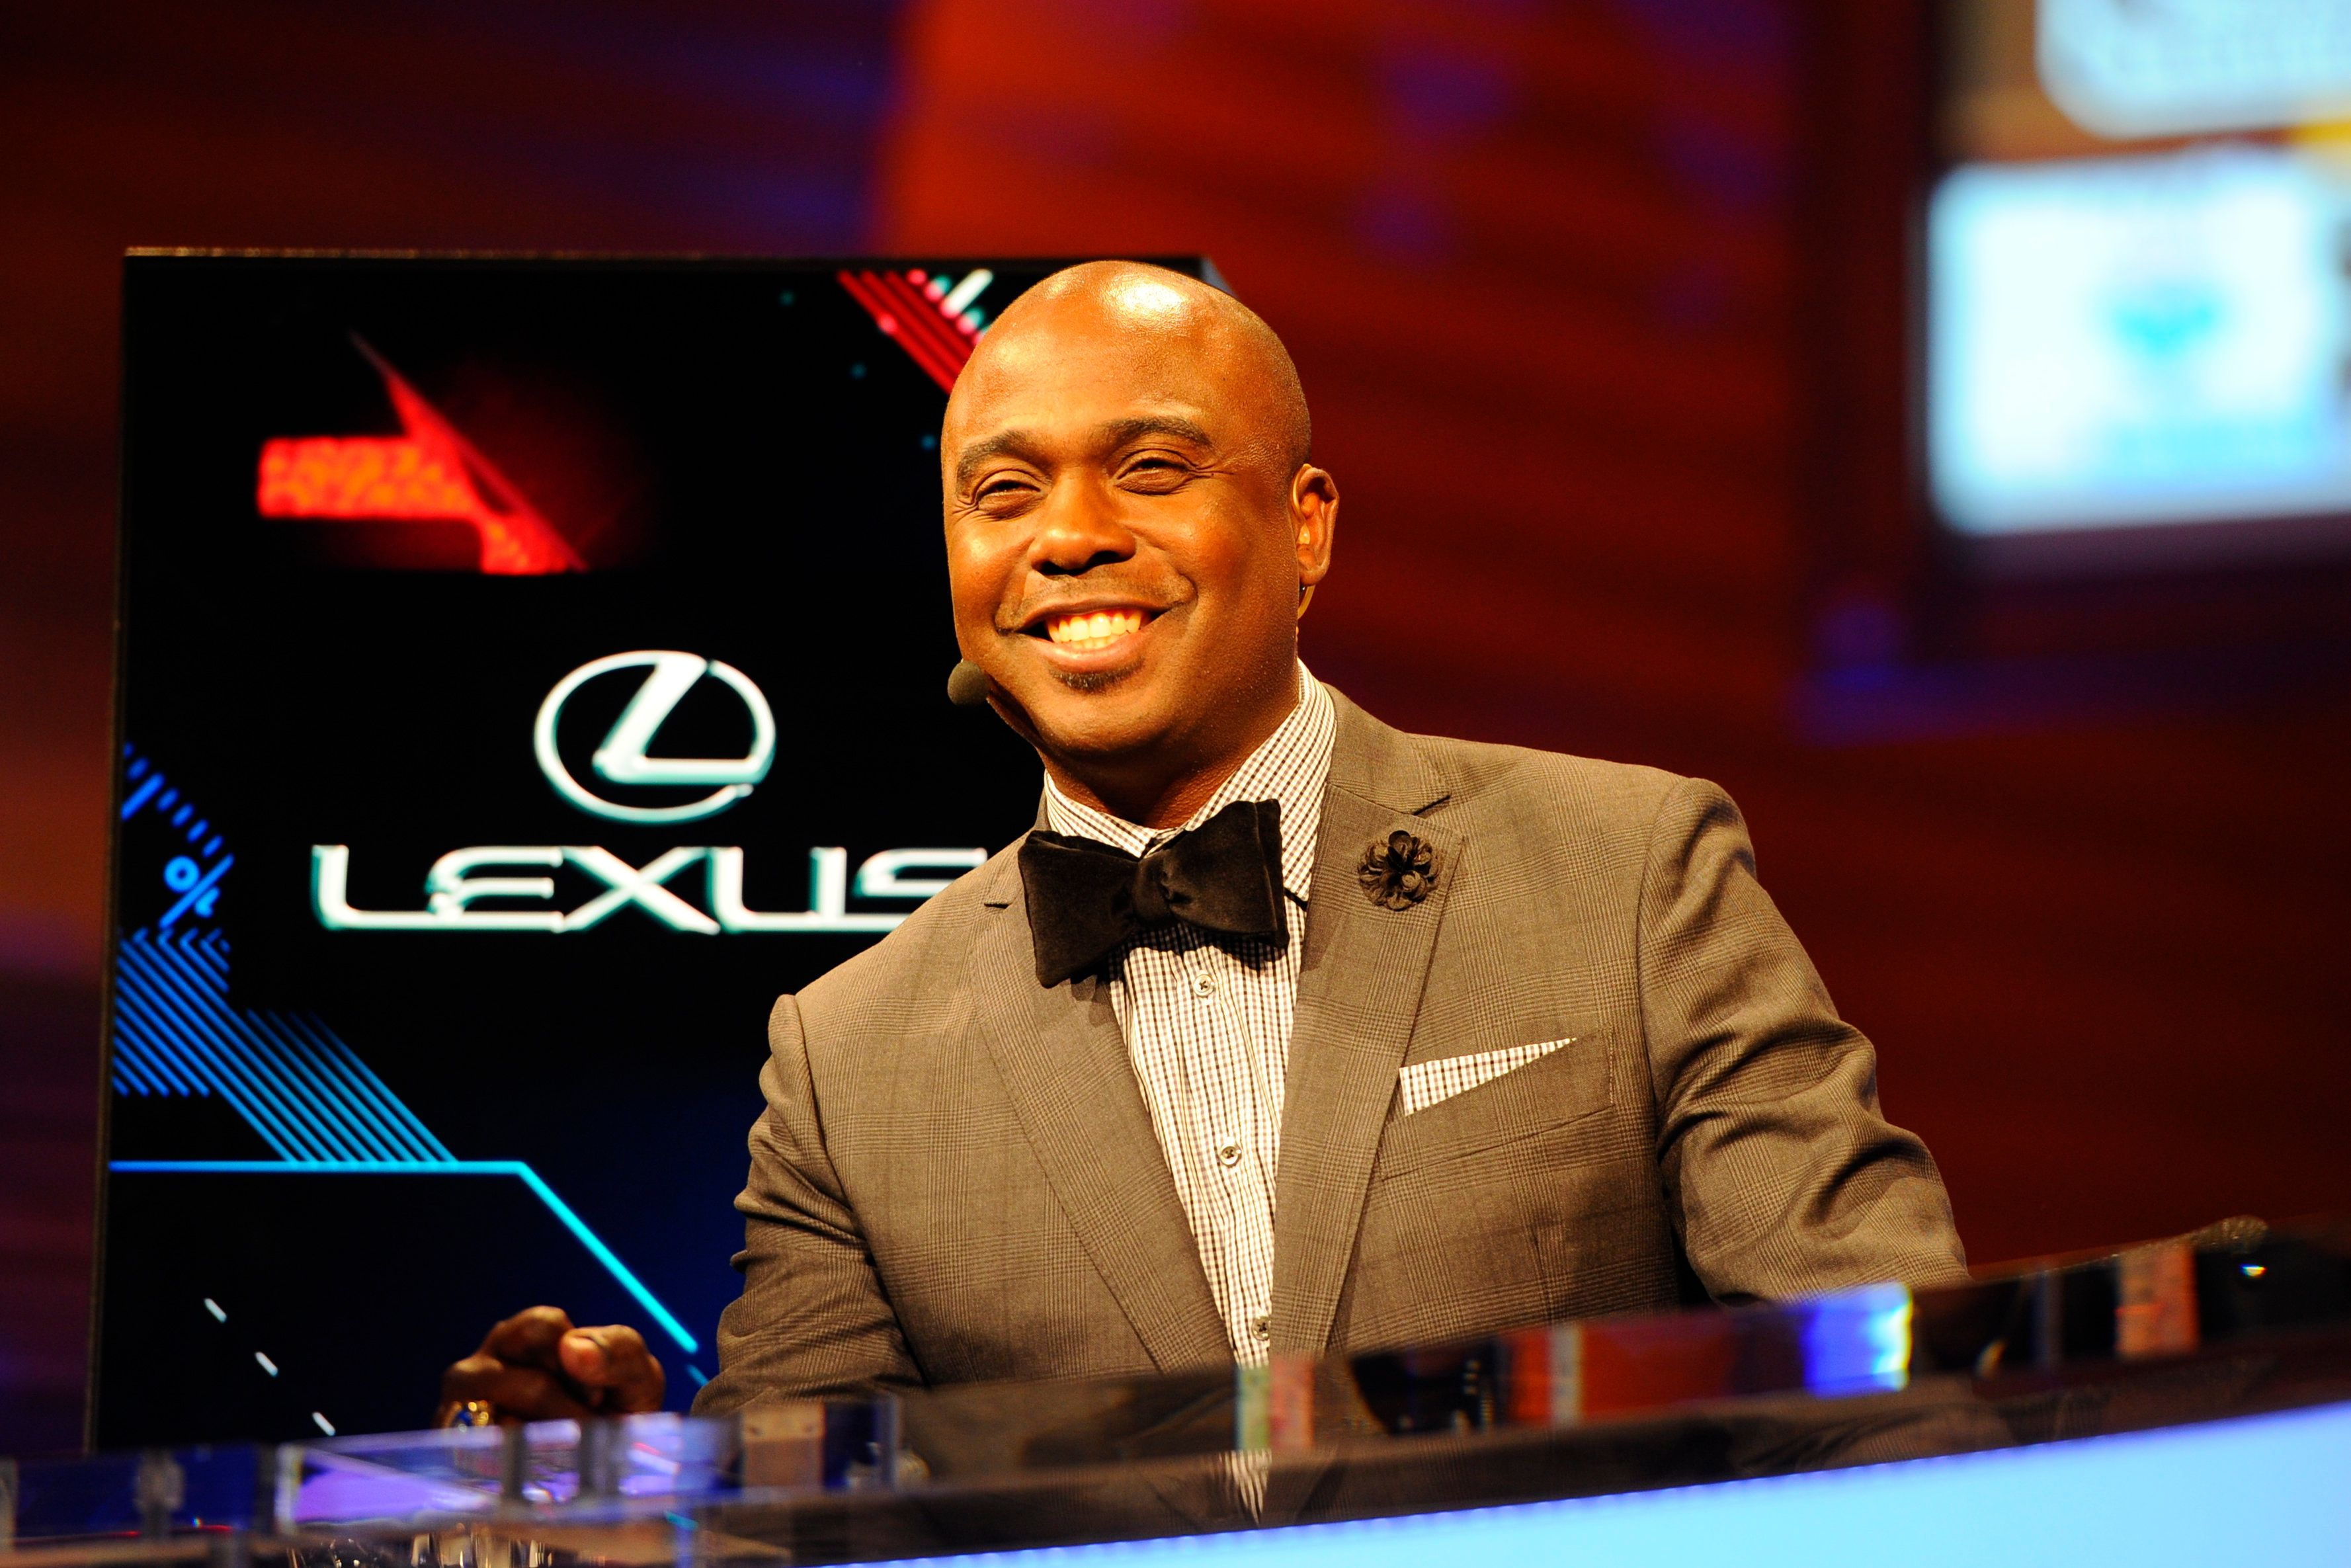 May 8, 2014: Former NFL player and NFL Network commentator Marshall Faulk broadcasts prior to the start of the first round of the NFL Draft at Radio City Music Hall in Manhattan, NY. (Photo by Rich Kane/Icon SMI/Corbis via Getty Images)